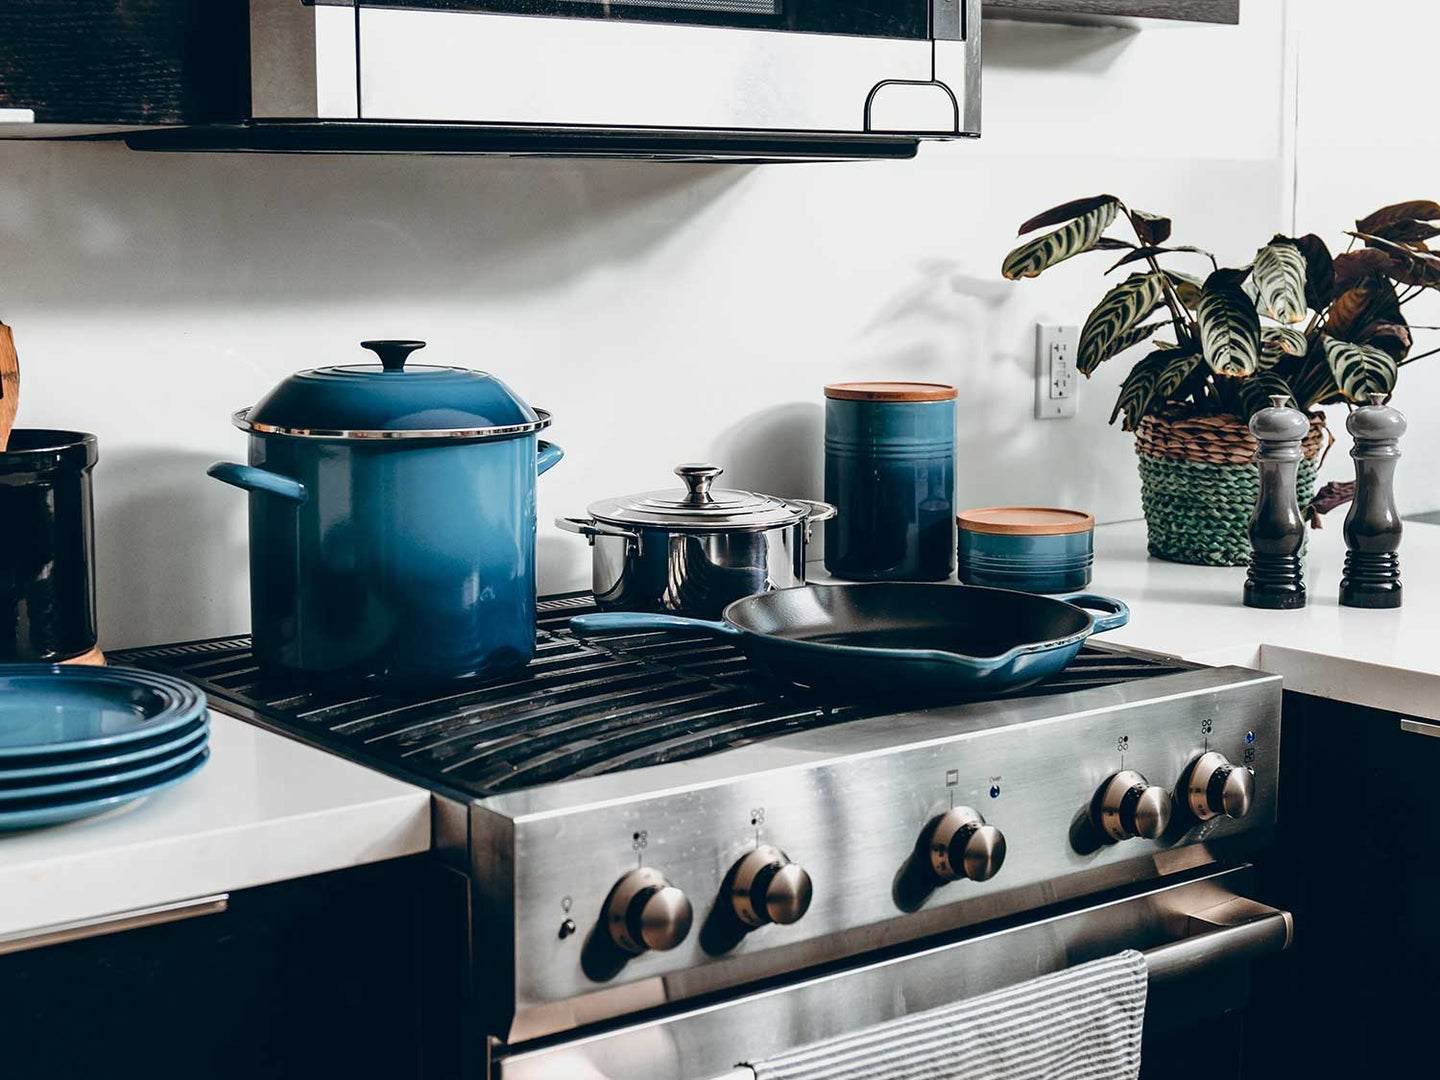 Cookware on stovetop